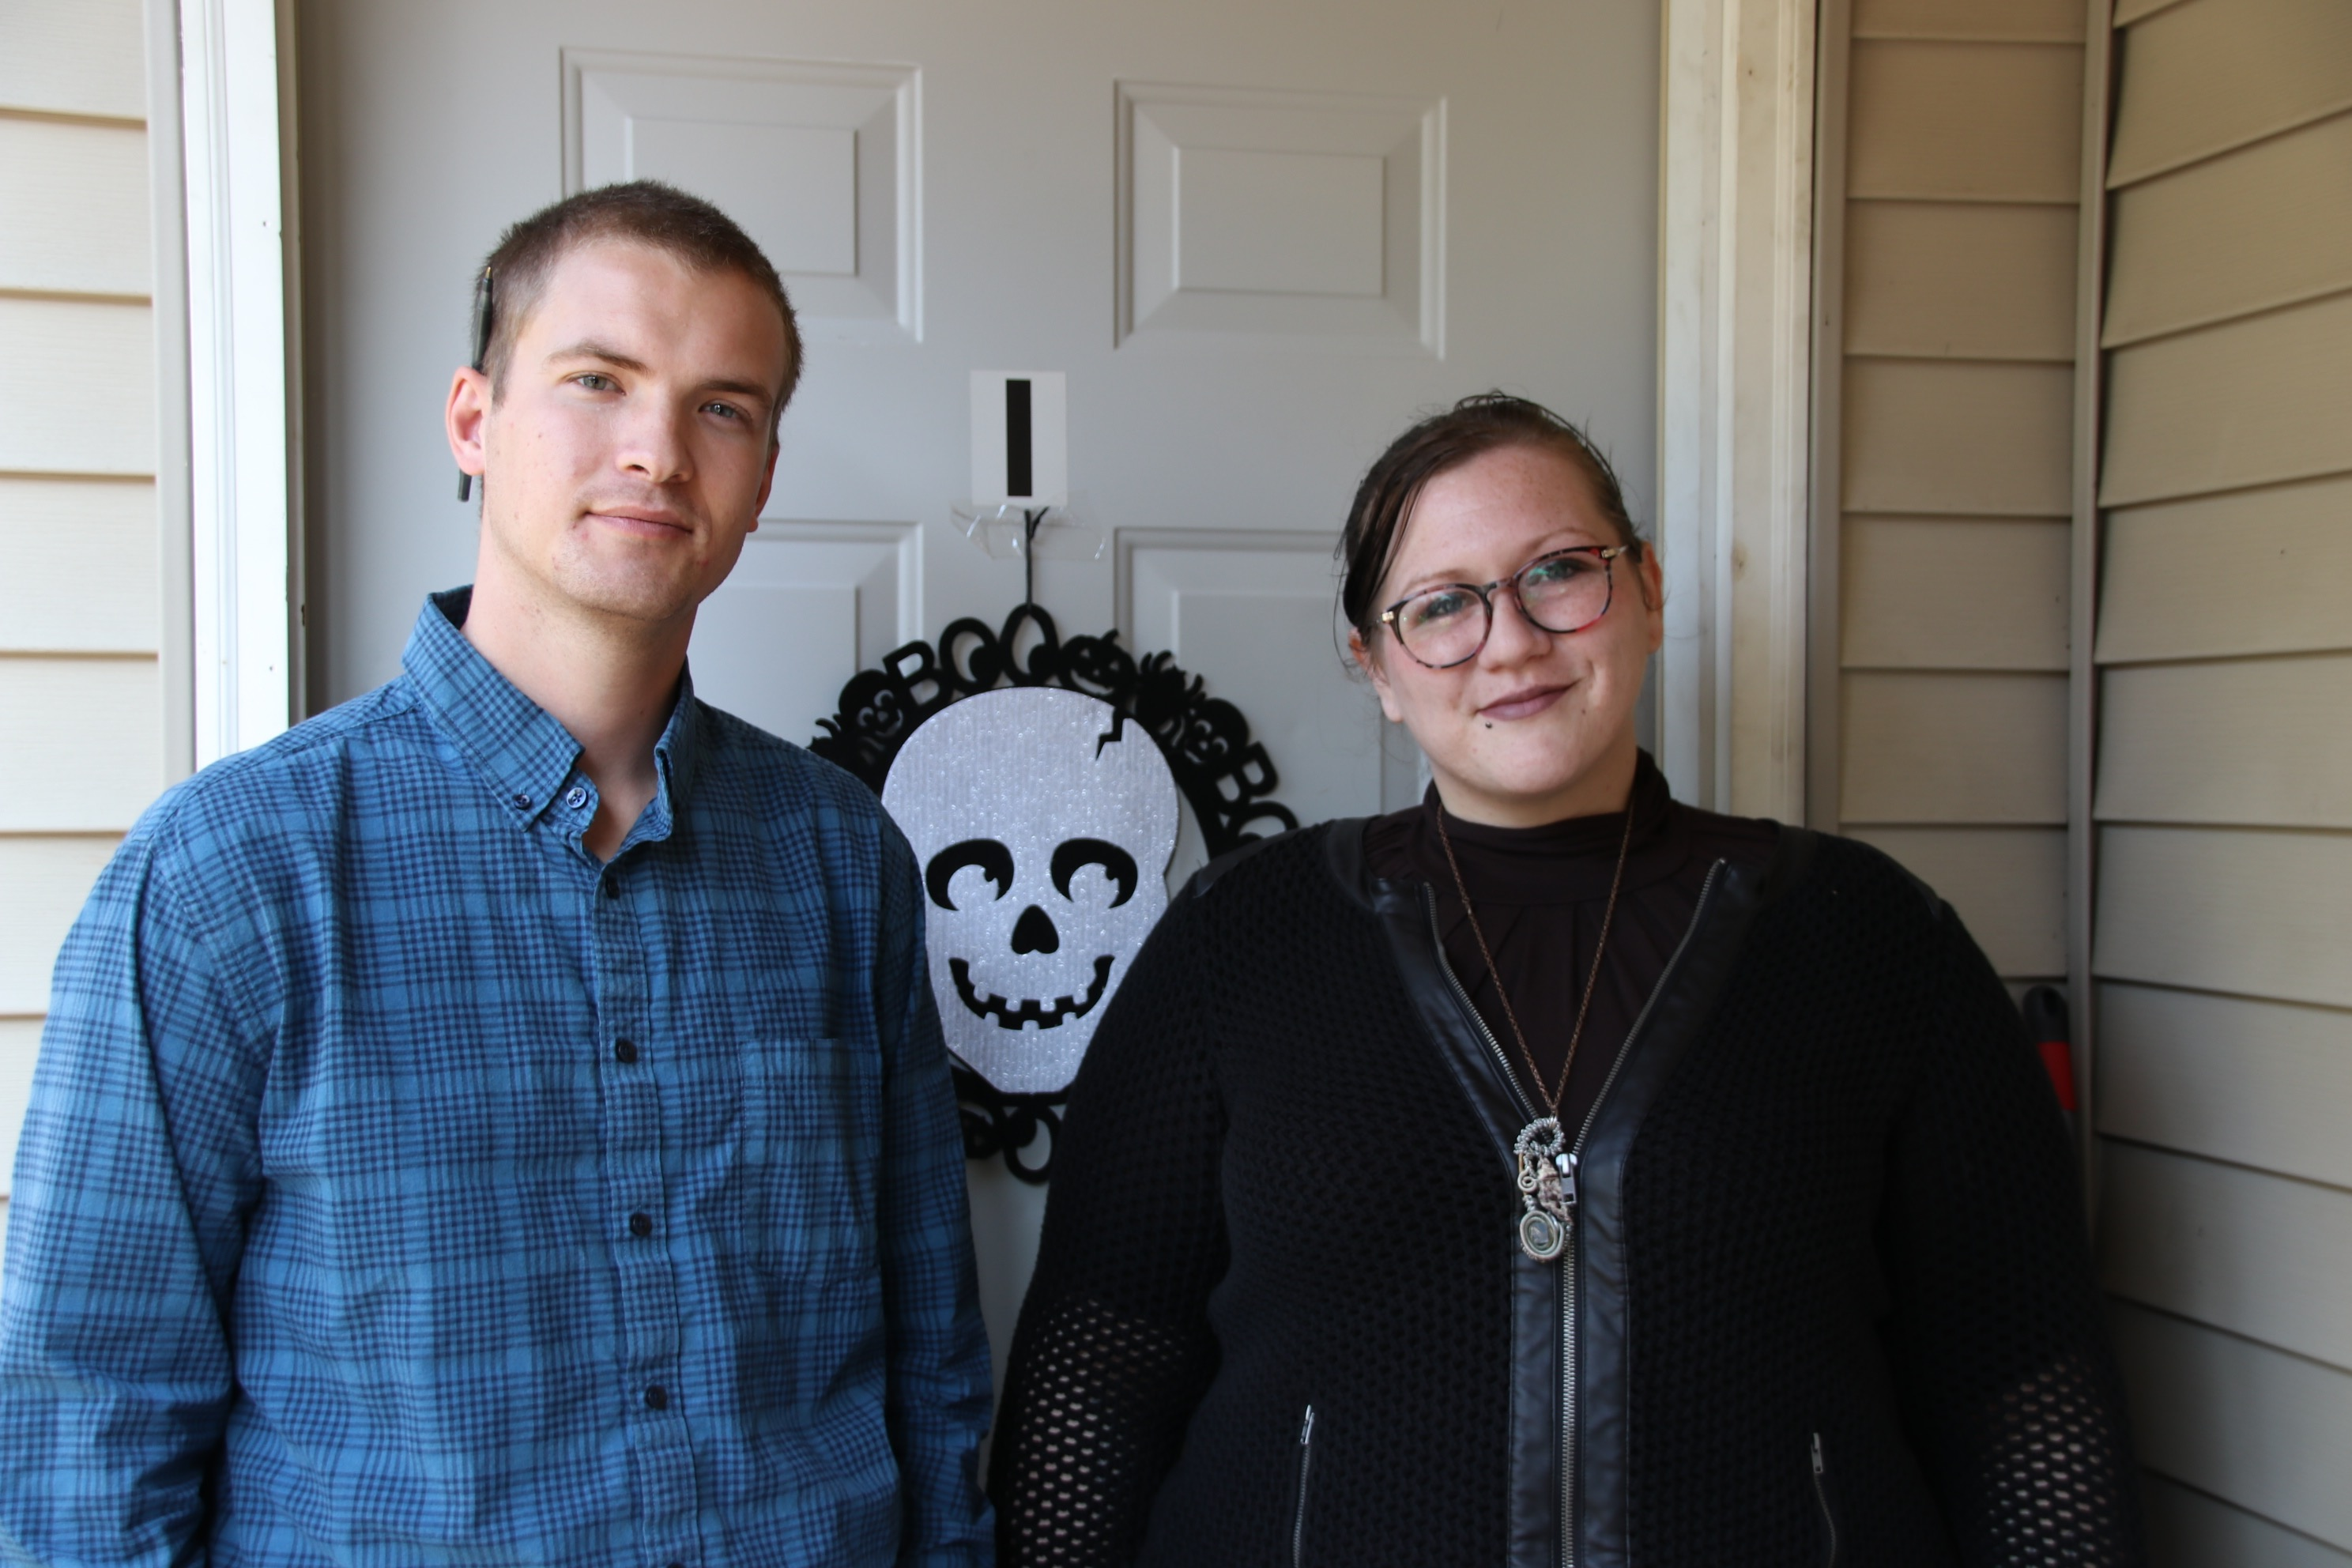 Journey House founder and director of mission Jesse Harvey and Director of Women's Services Miranda Gilman stand at the door of the new women's sober living home in Sanford. Journey House opened a  sober living home for men across town earlier this year. TAMMY WELLS/Journal Tribune